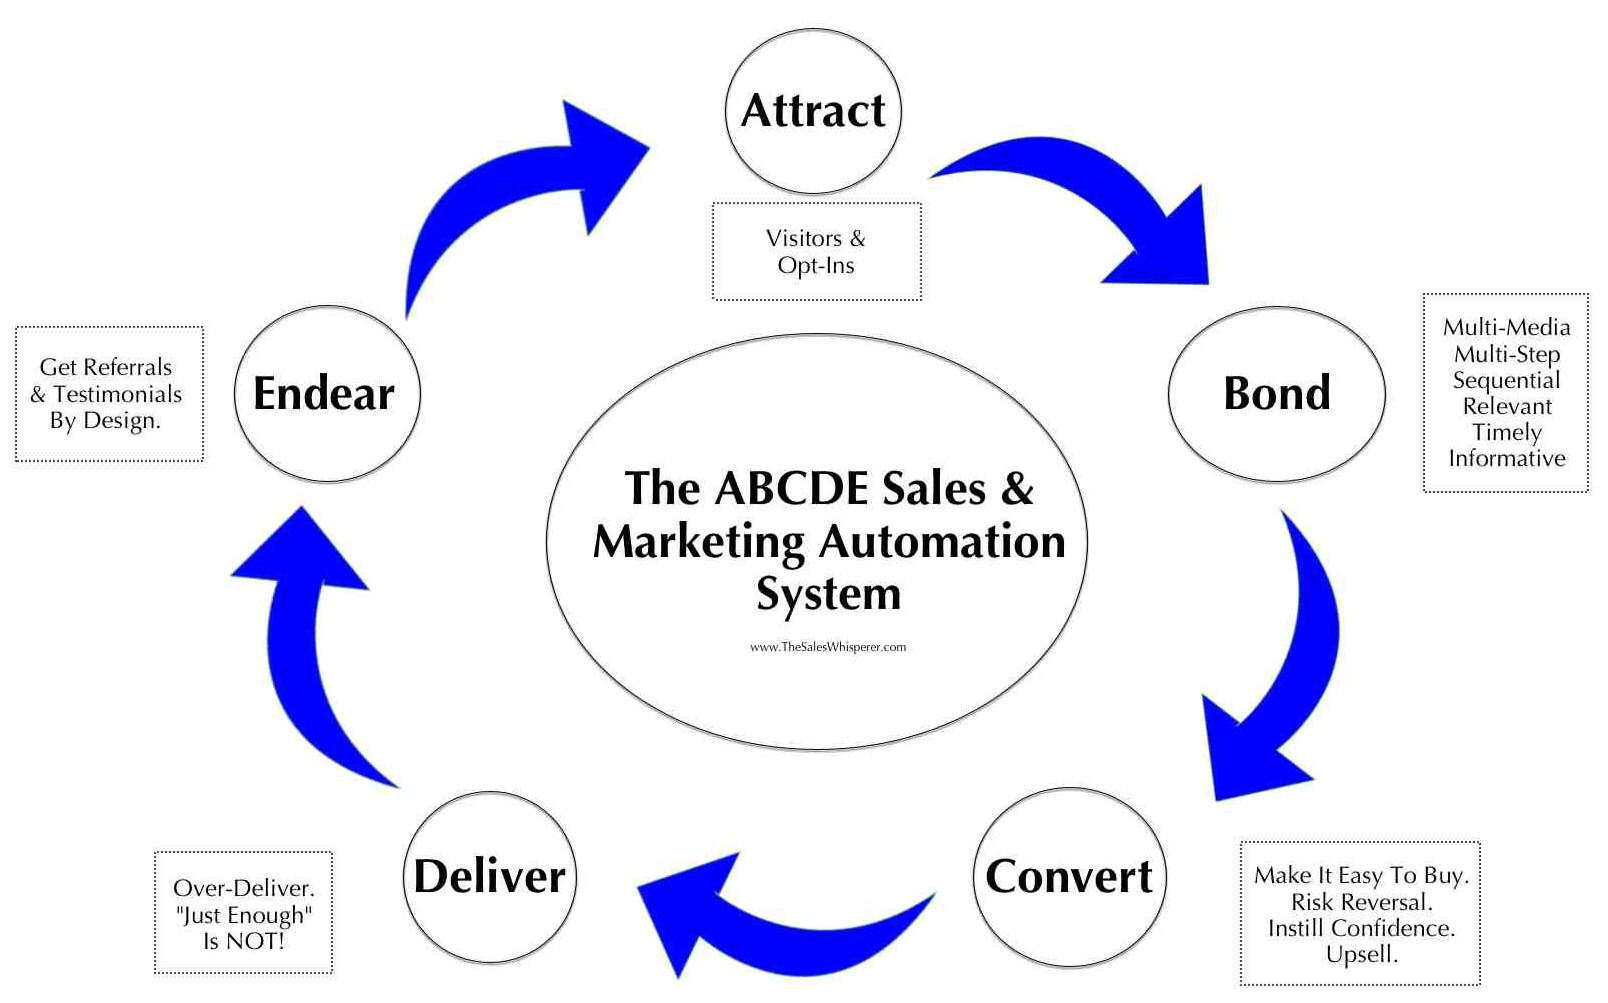 Follow the ABCDE sales and marketing system of Wes Schaeffer, The Sales Whisperer®.